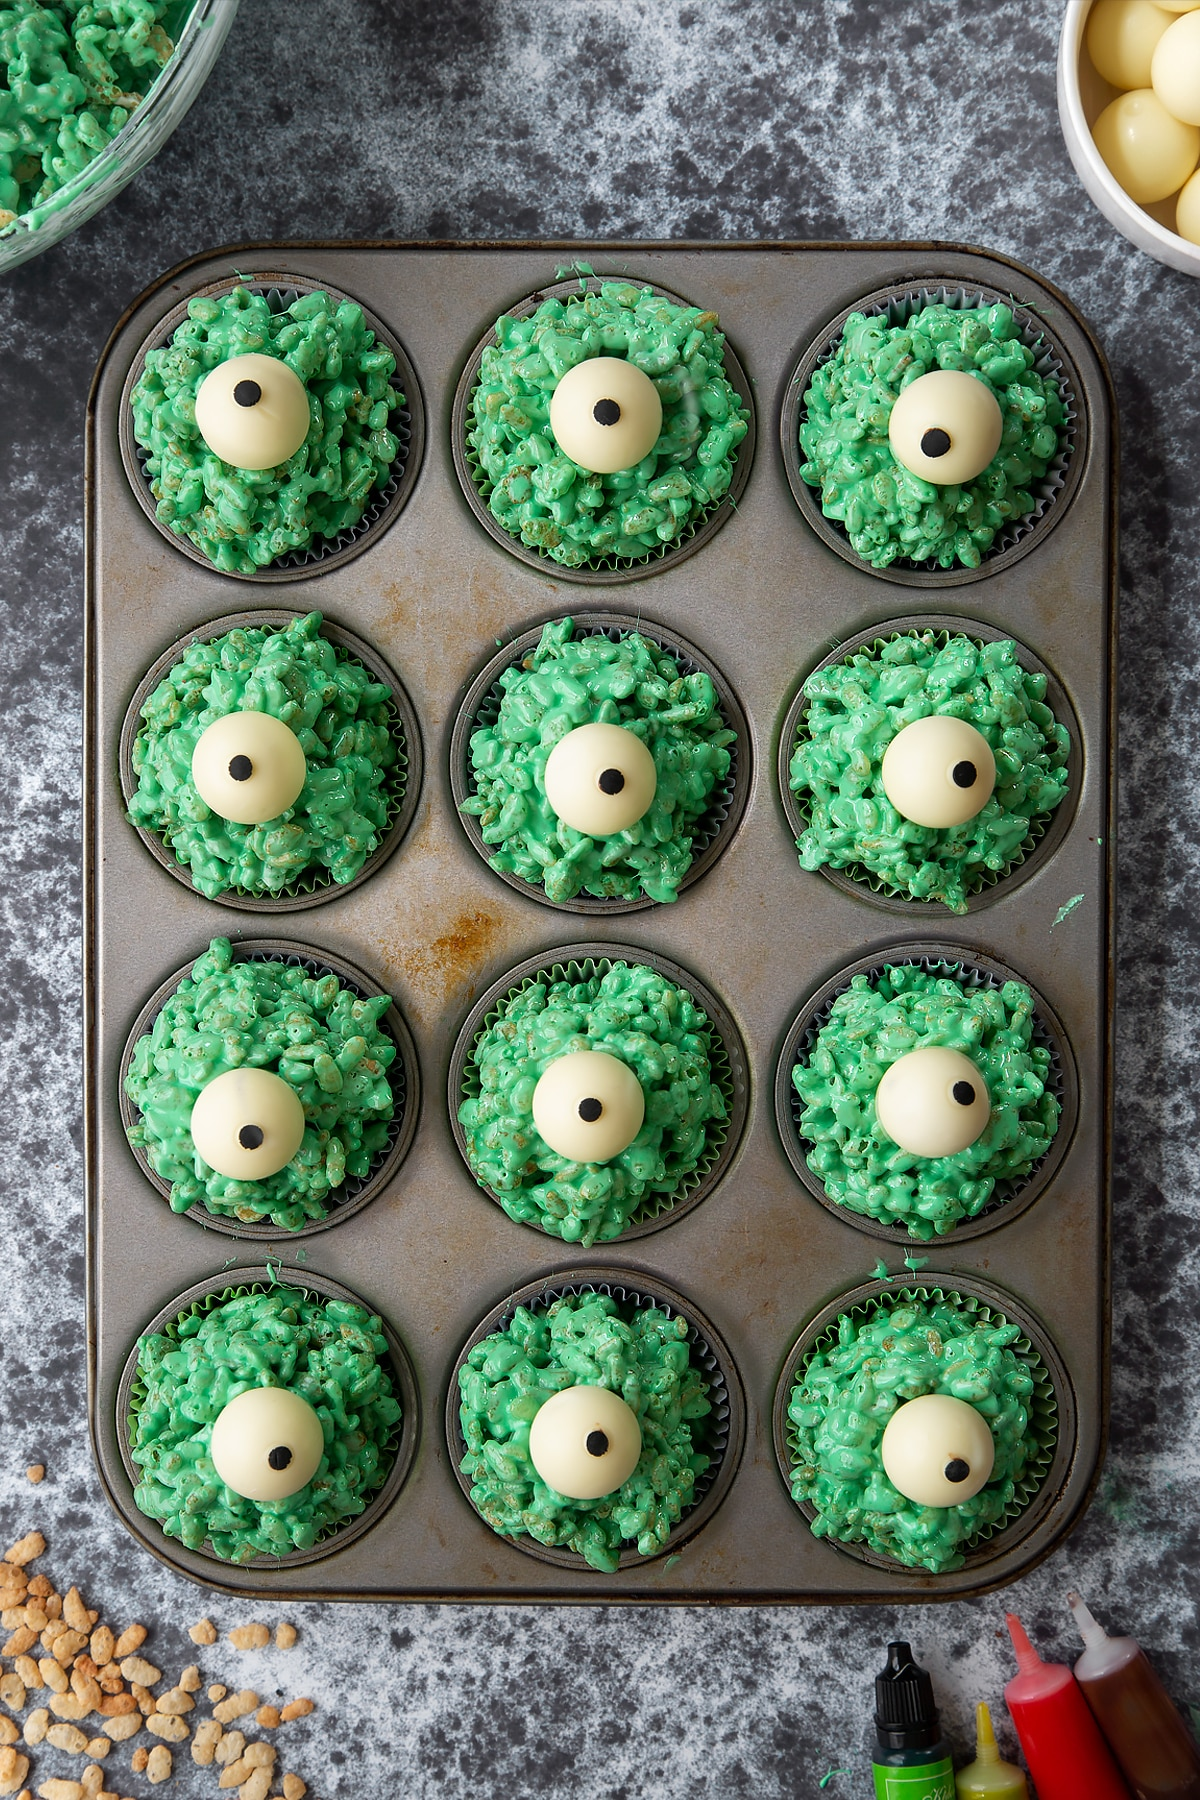 12-hole muffin tray lined with cupcake cases filled with green rice crispy treats topped with white chocolate spheres decorated with icing pupils. Ingredients to make Halloween crispy cakes surround the tray.